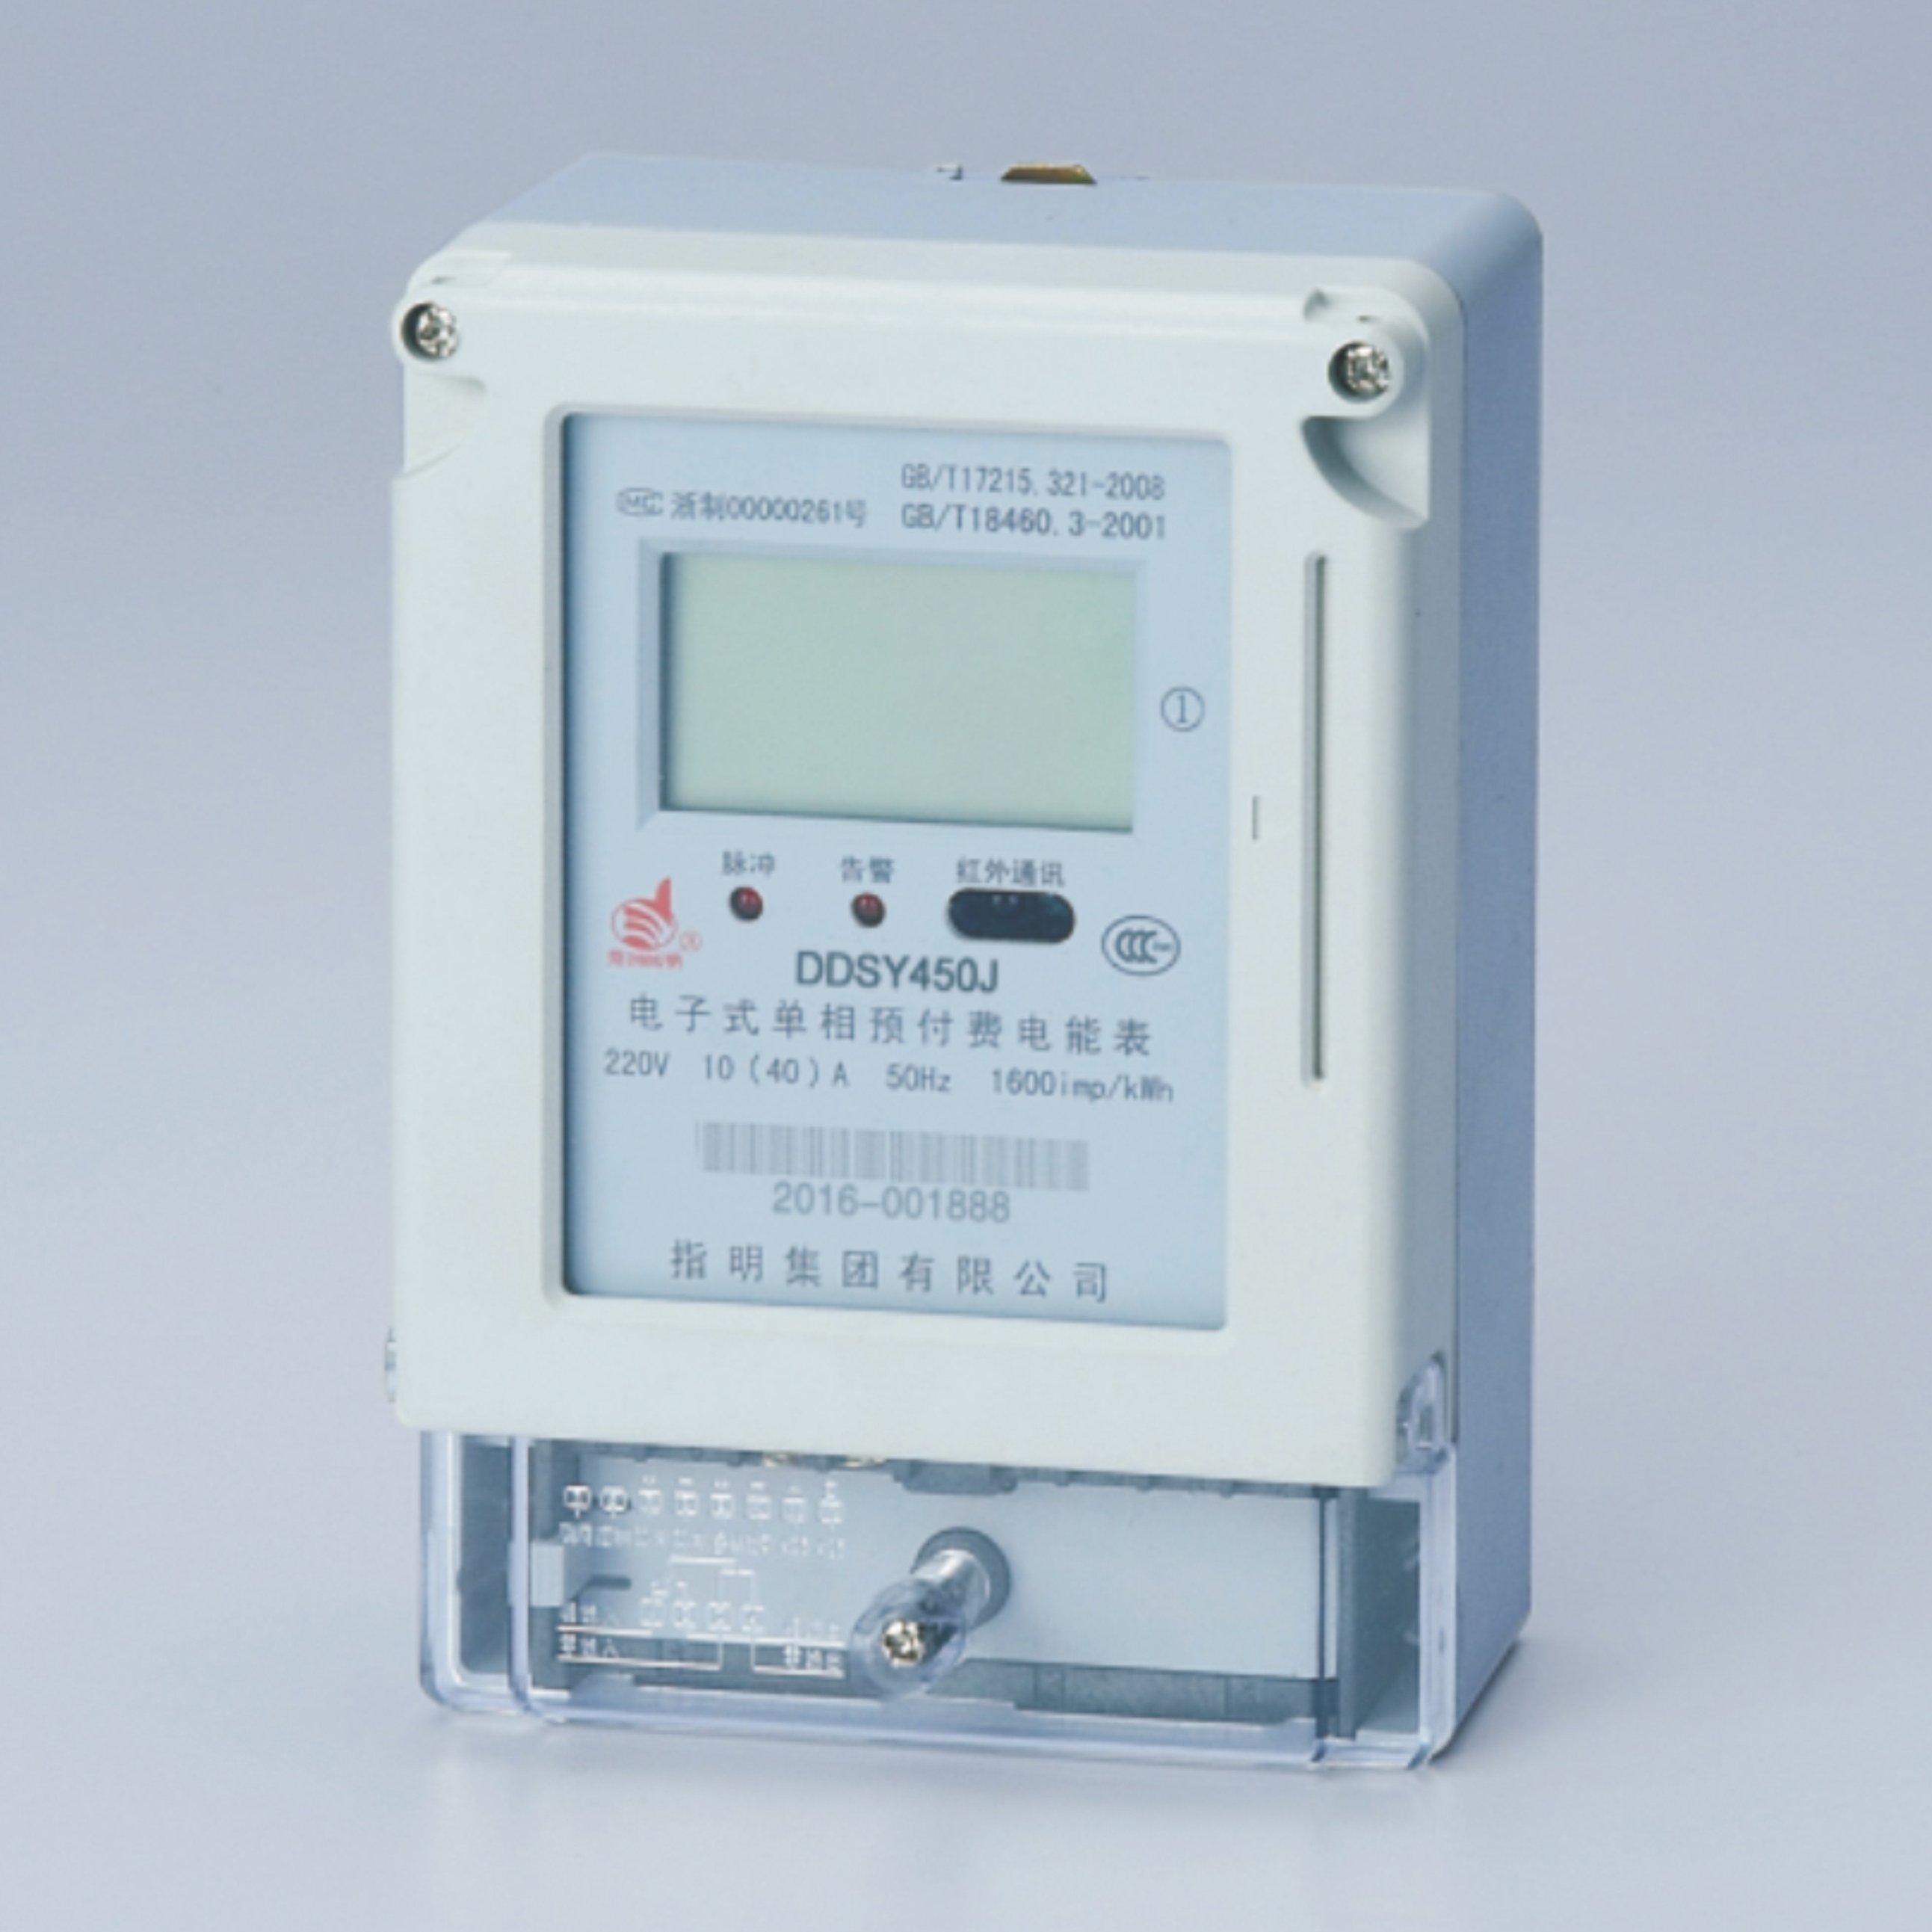 DDSY450J Single-phase electronic RS485 type prepaid watt-hour meters